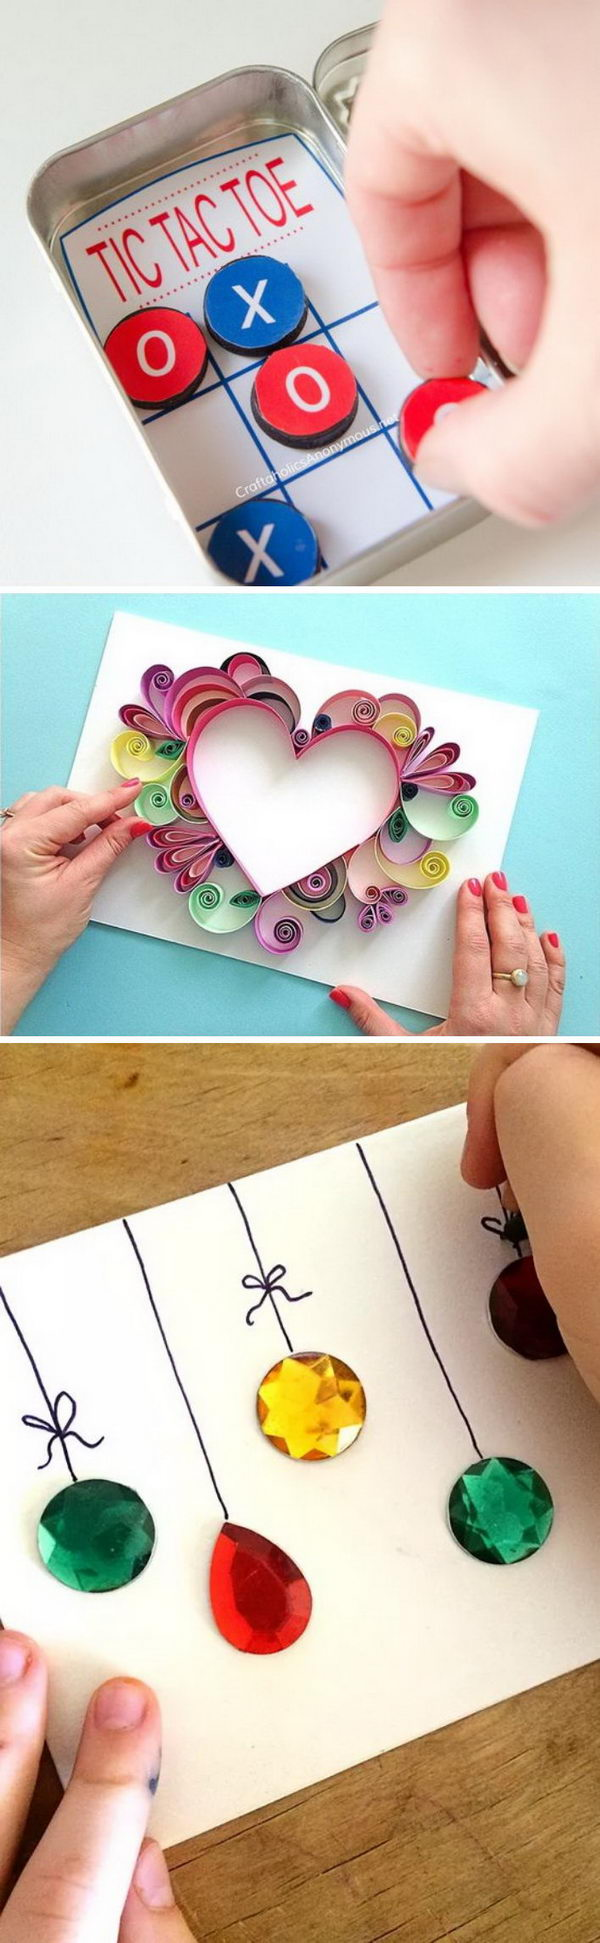 Easy DIY Projects With Lots of Tutorials.